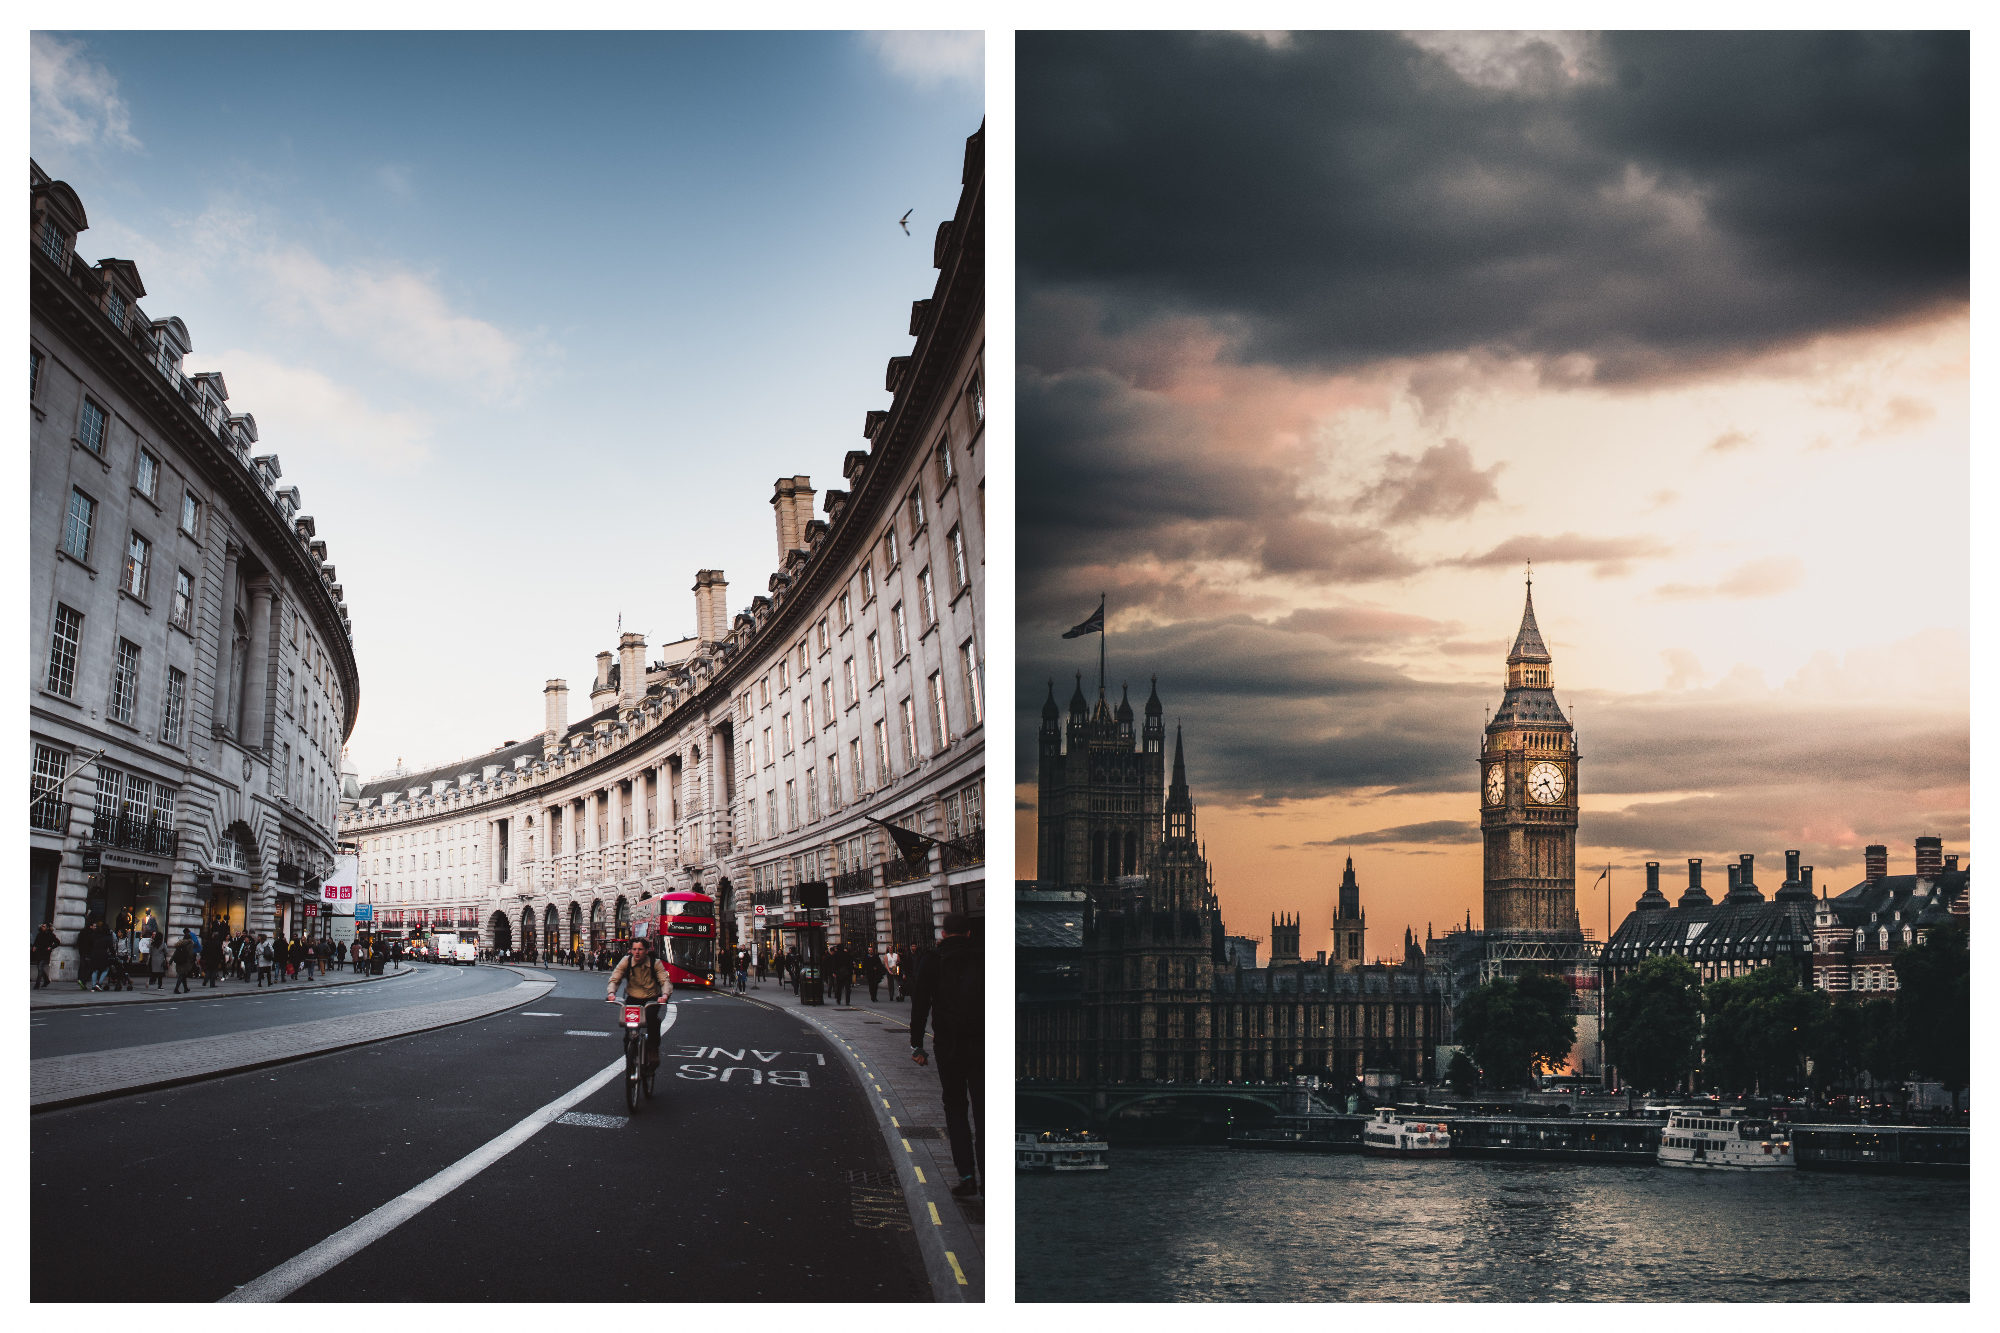 Regent's street in London and its white stone buildings (left). The Big Ben in London close to the Thames River (right).